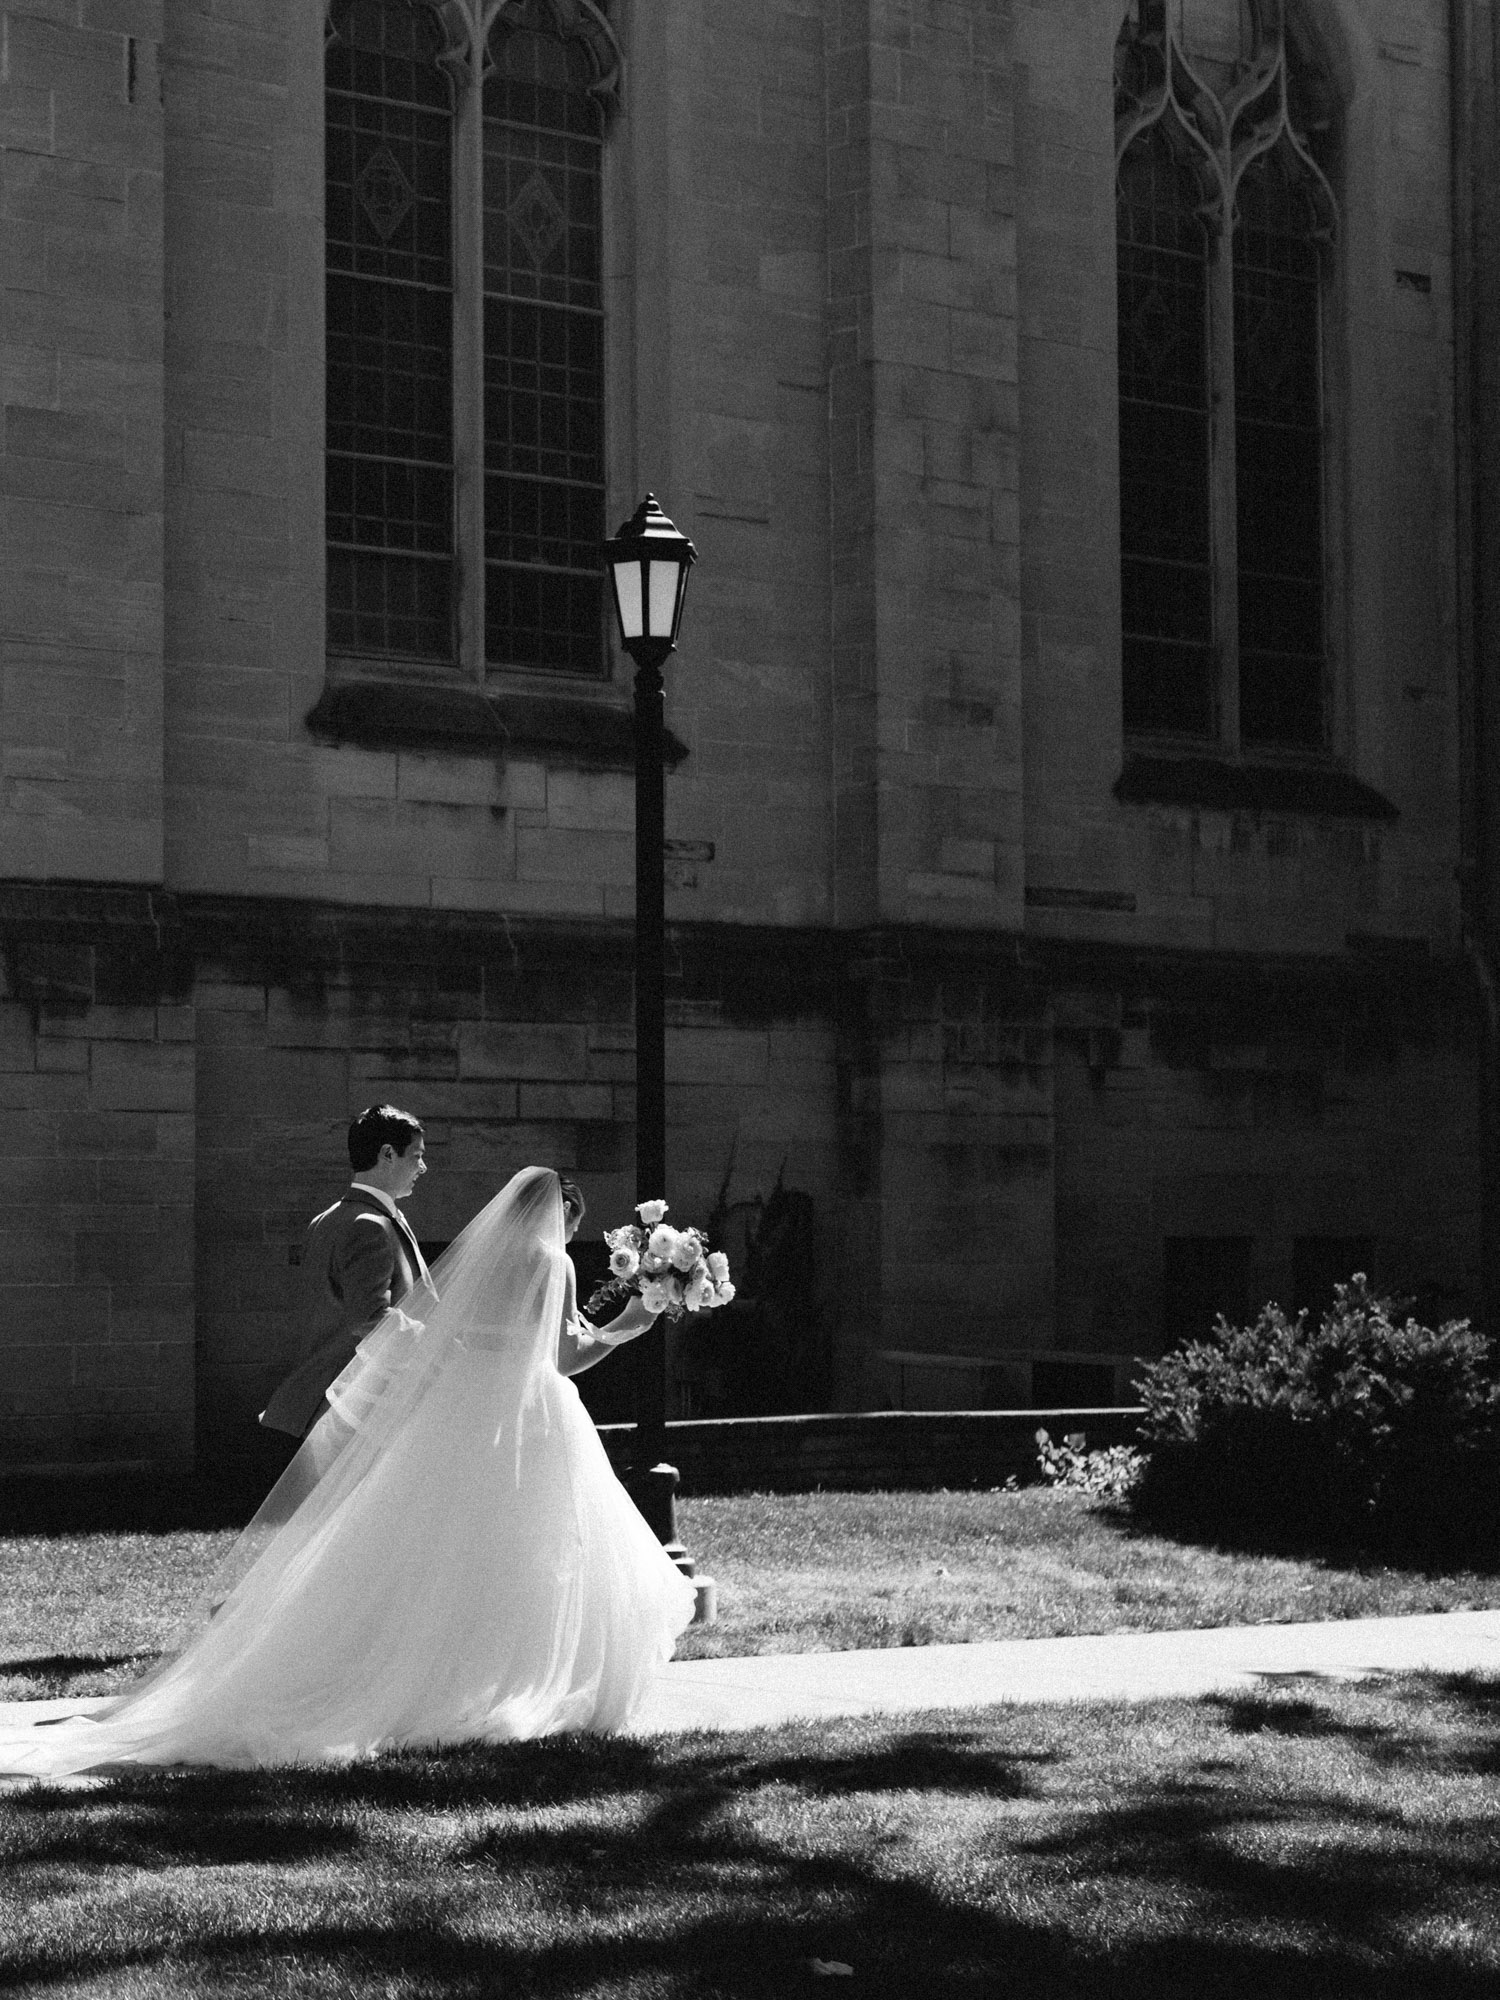 A newlywed couple walks together in sunlight outside an Ann Arbor, Michigan church